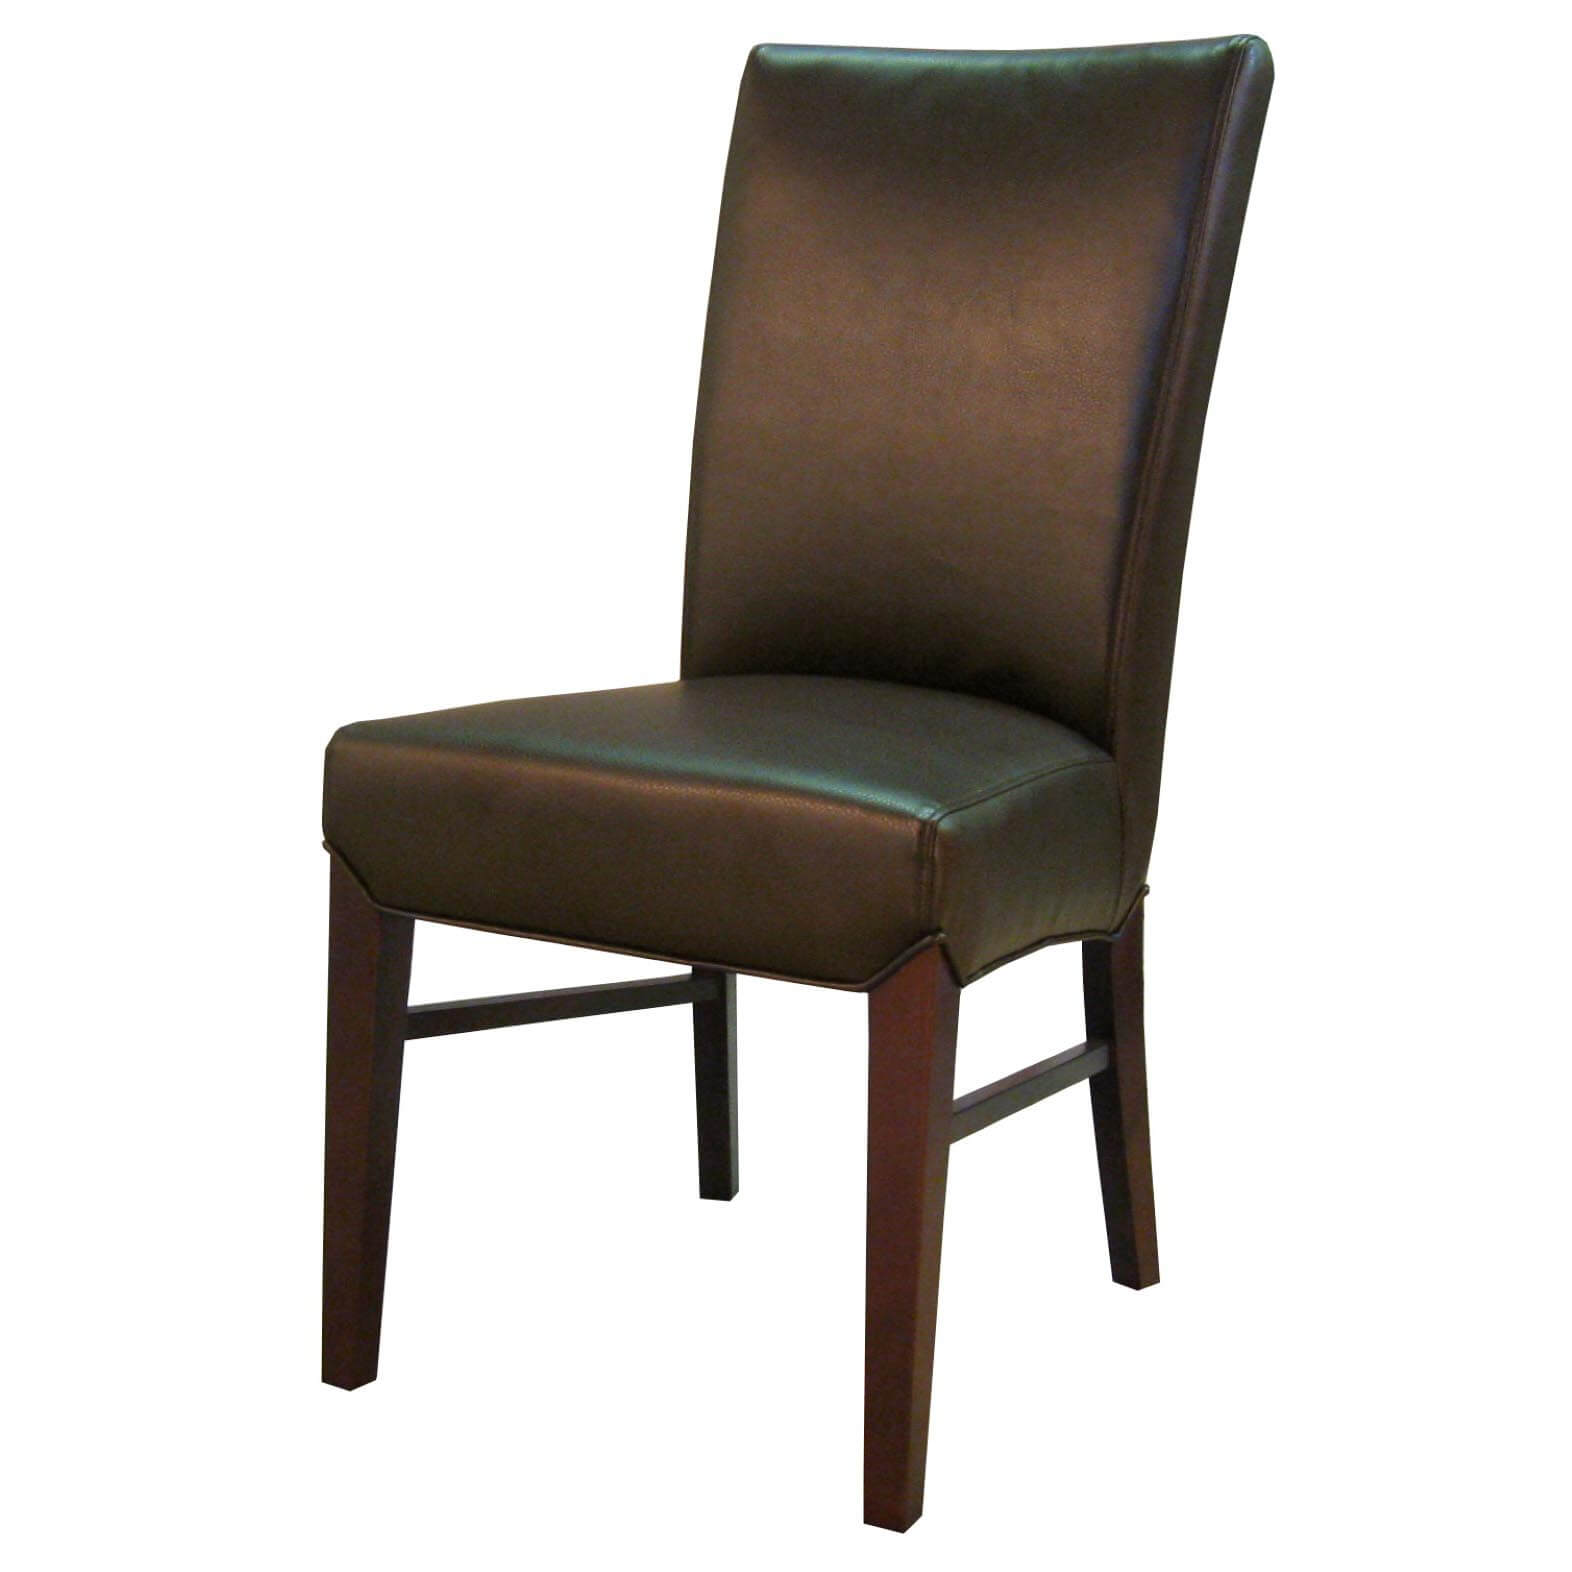 milton bonded leather chair pomegranate set of 2 buy online at best